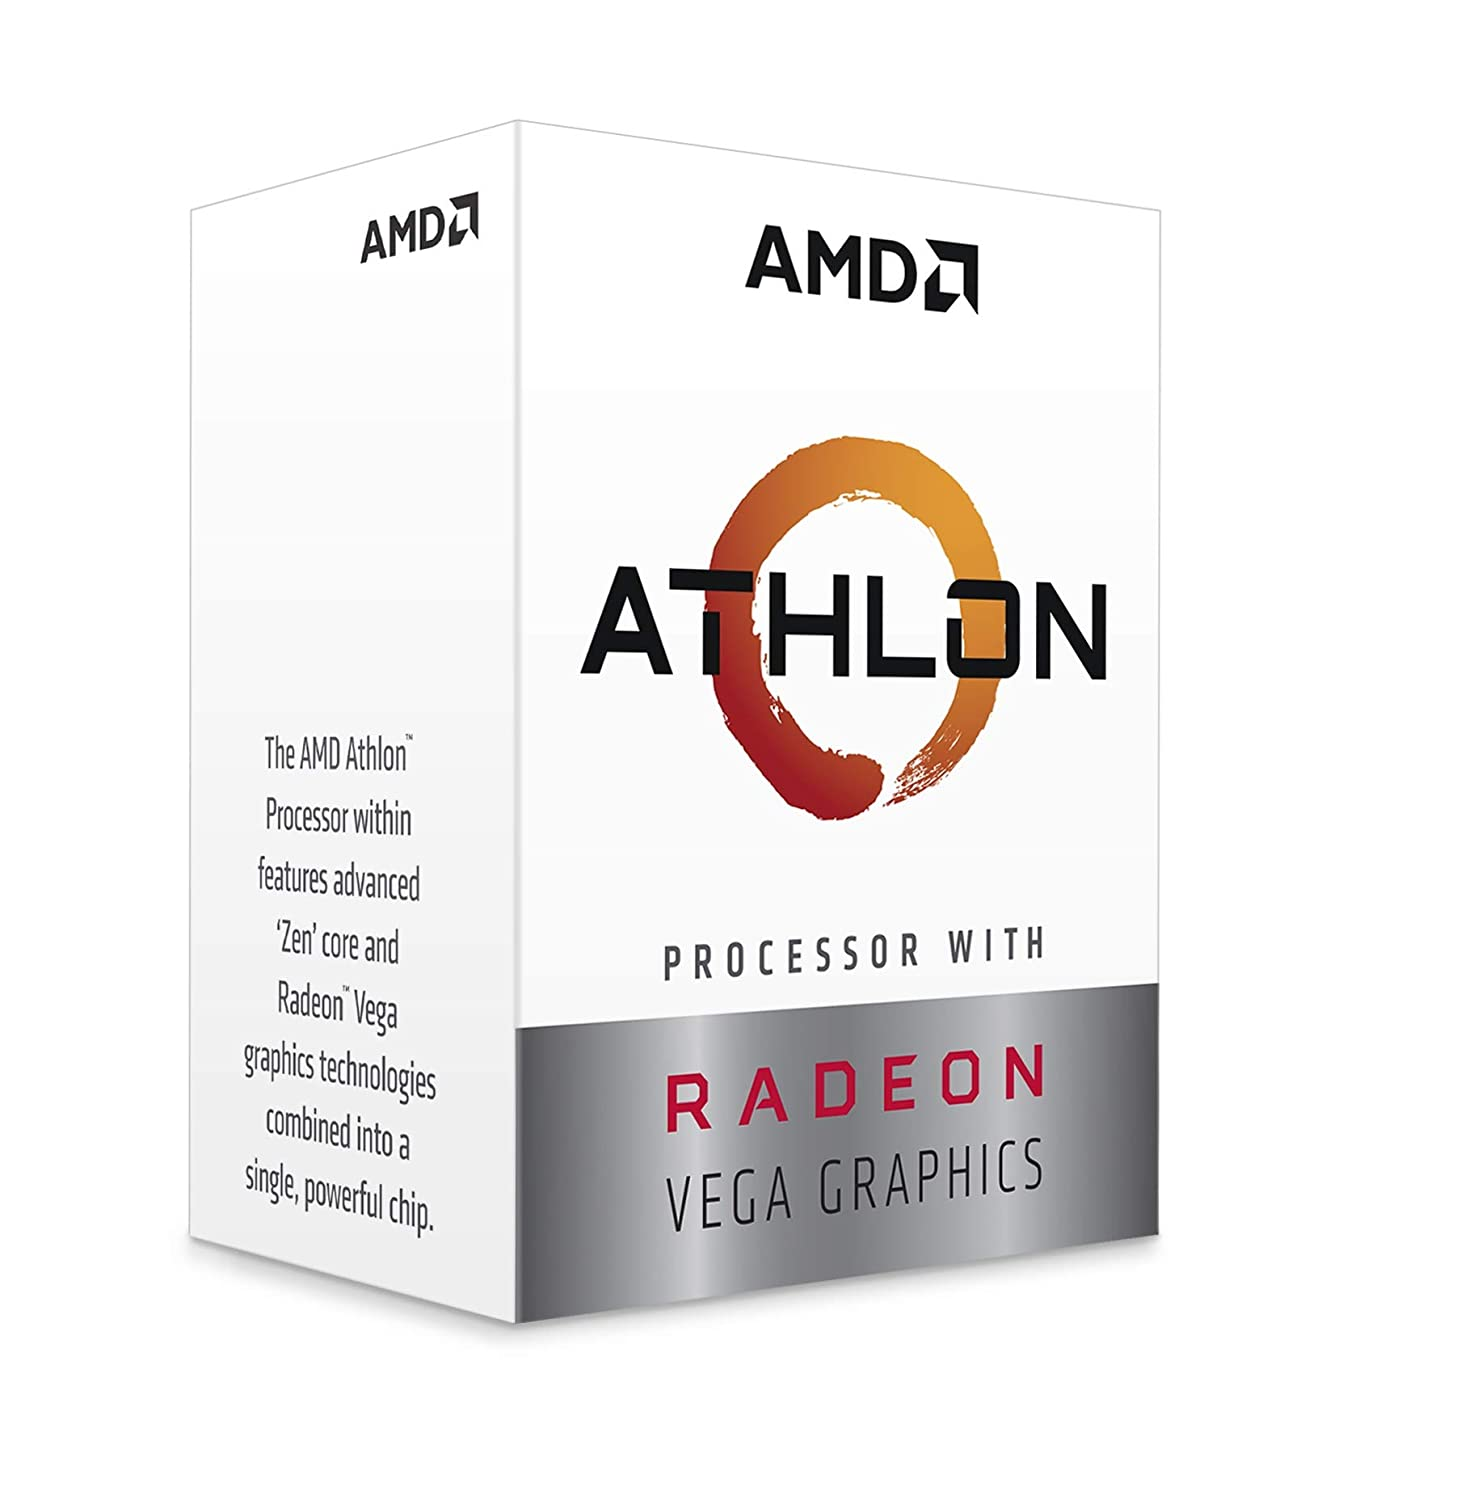 MSI M630 AMD Athlon 64 Processor Drivers (2019)